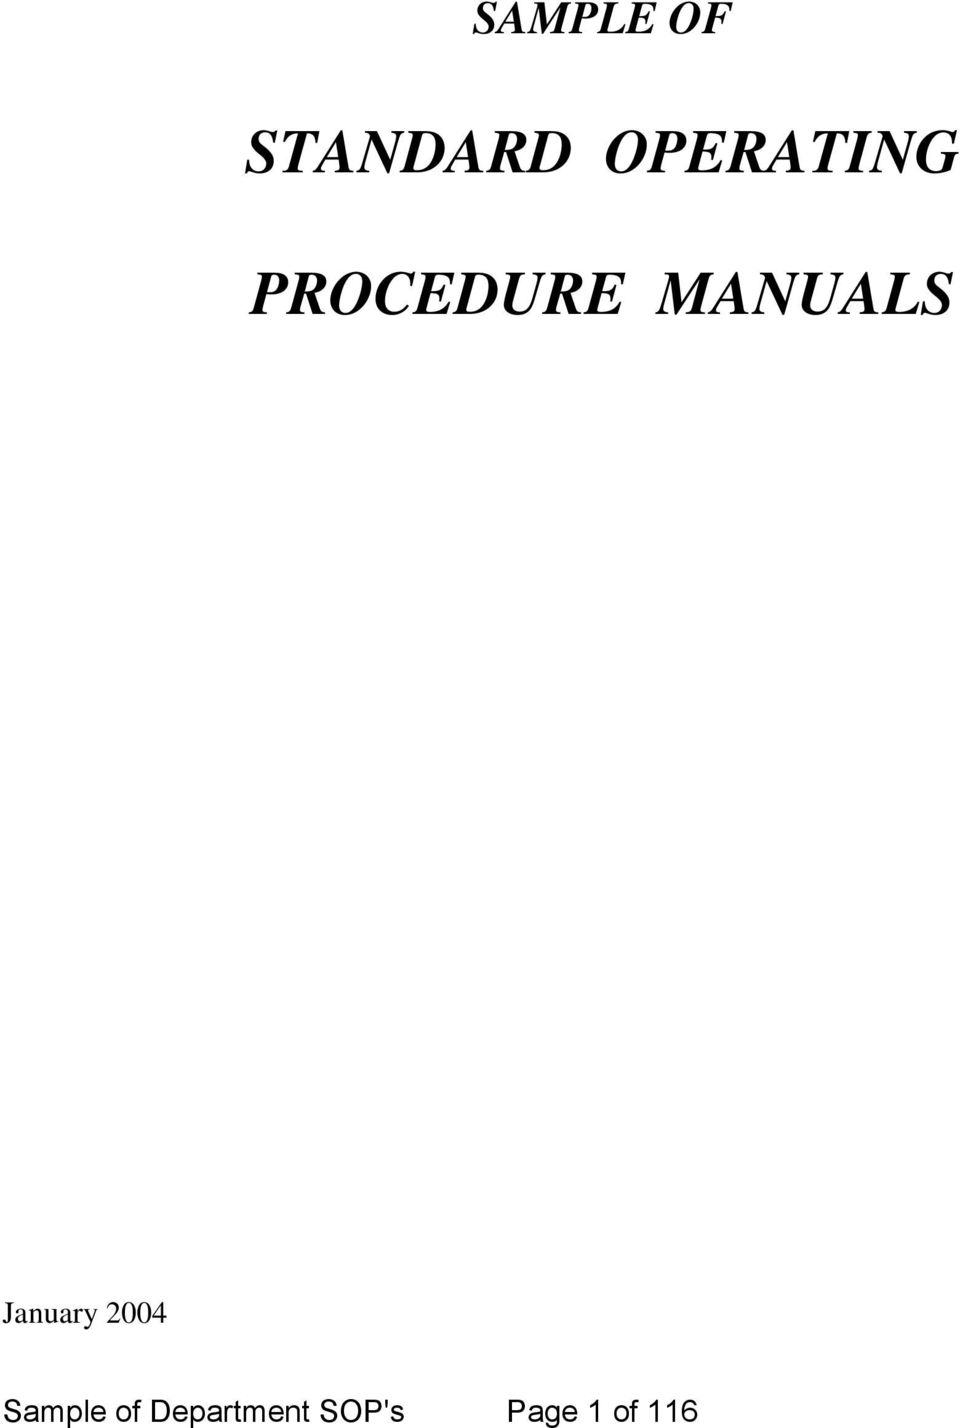 standard operating procedure manual pdf